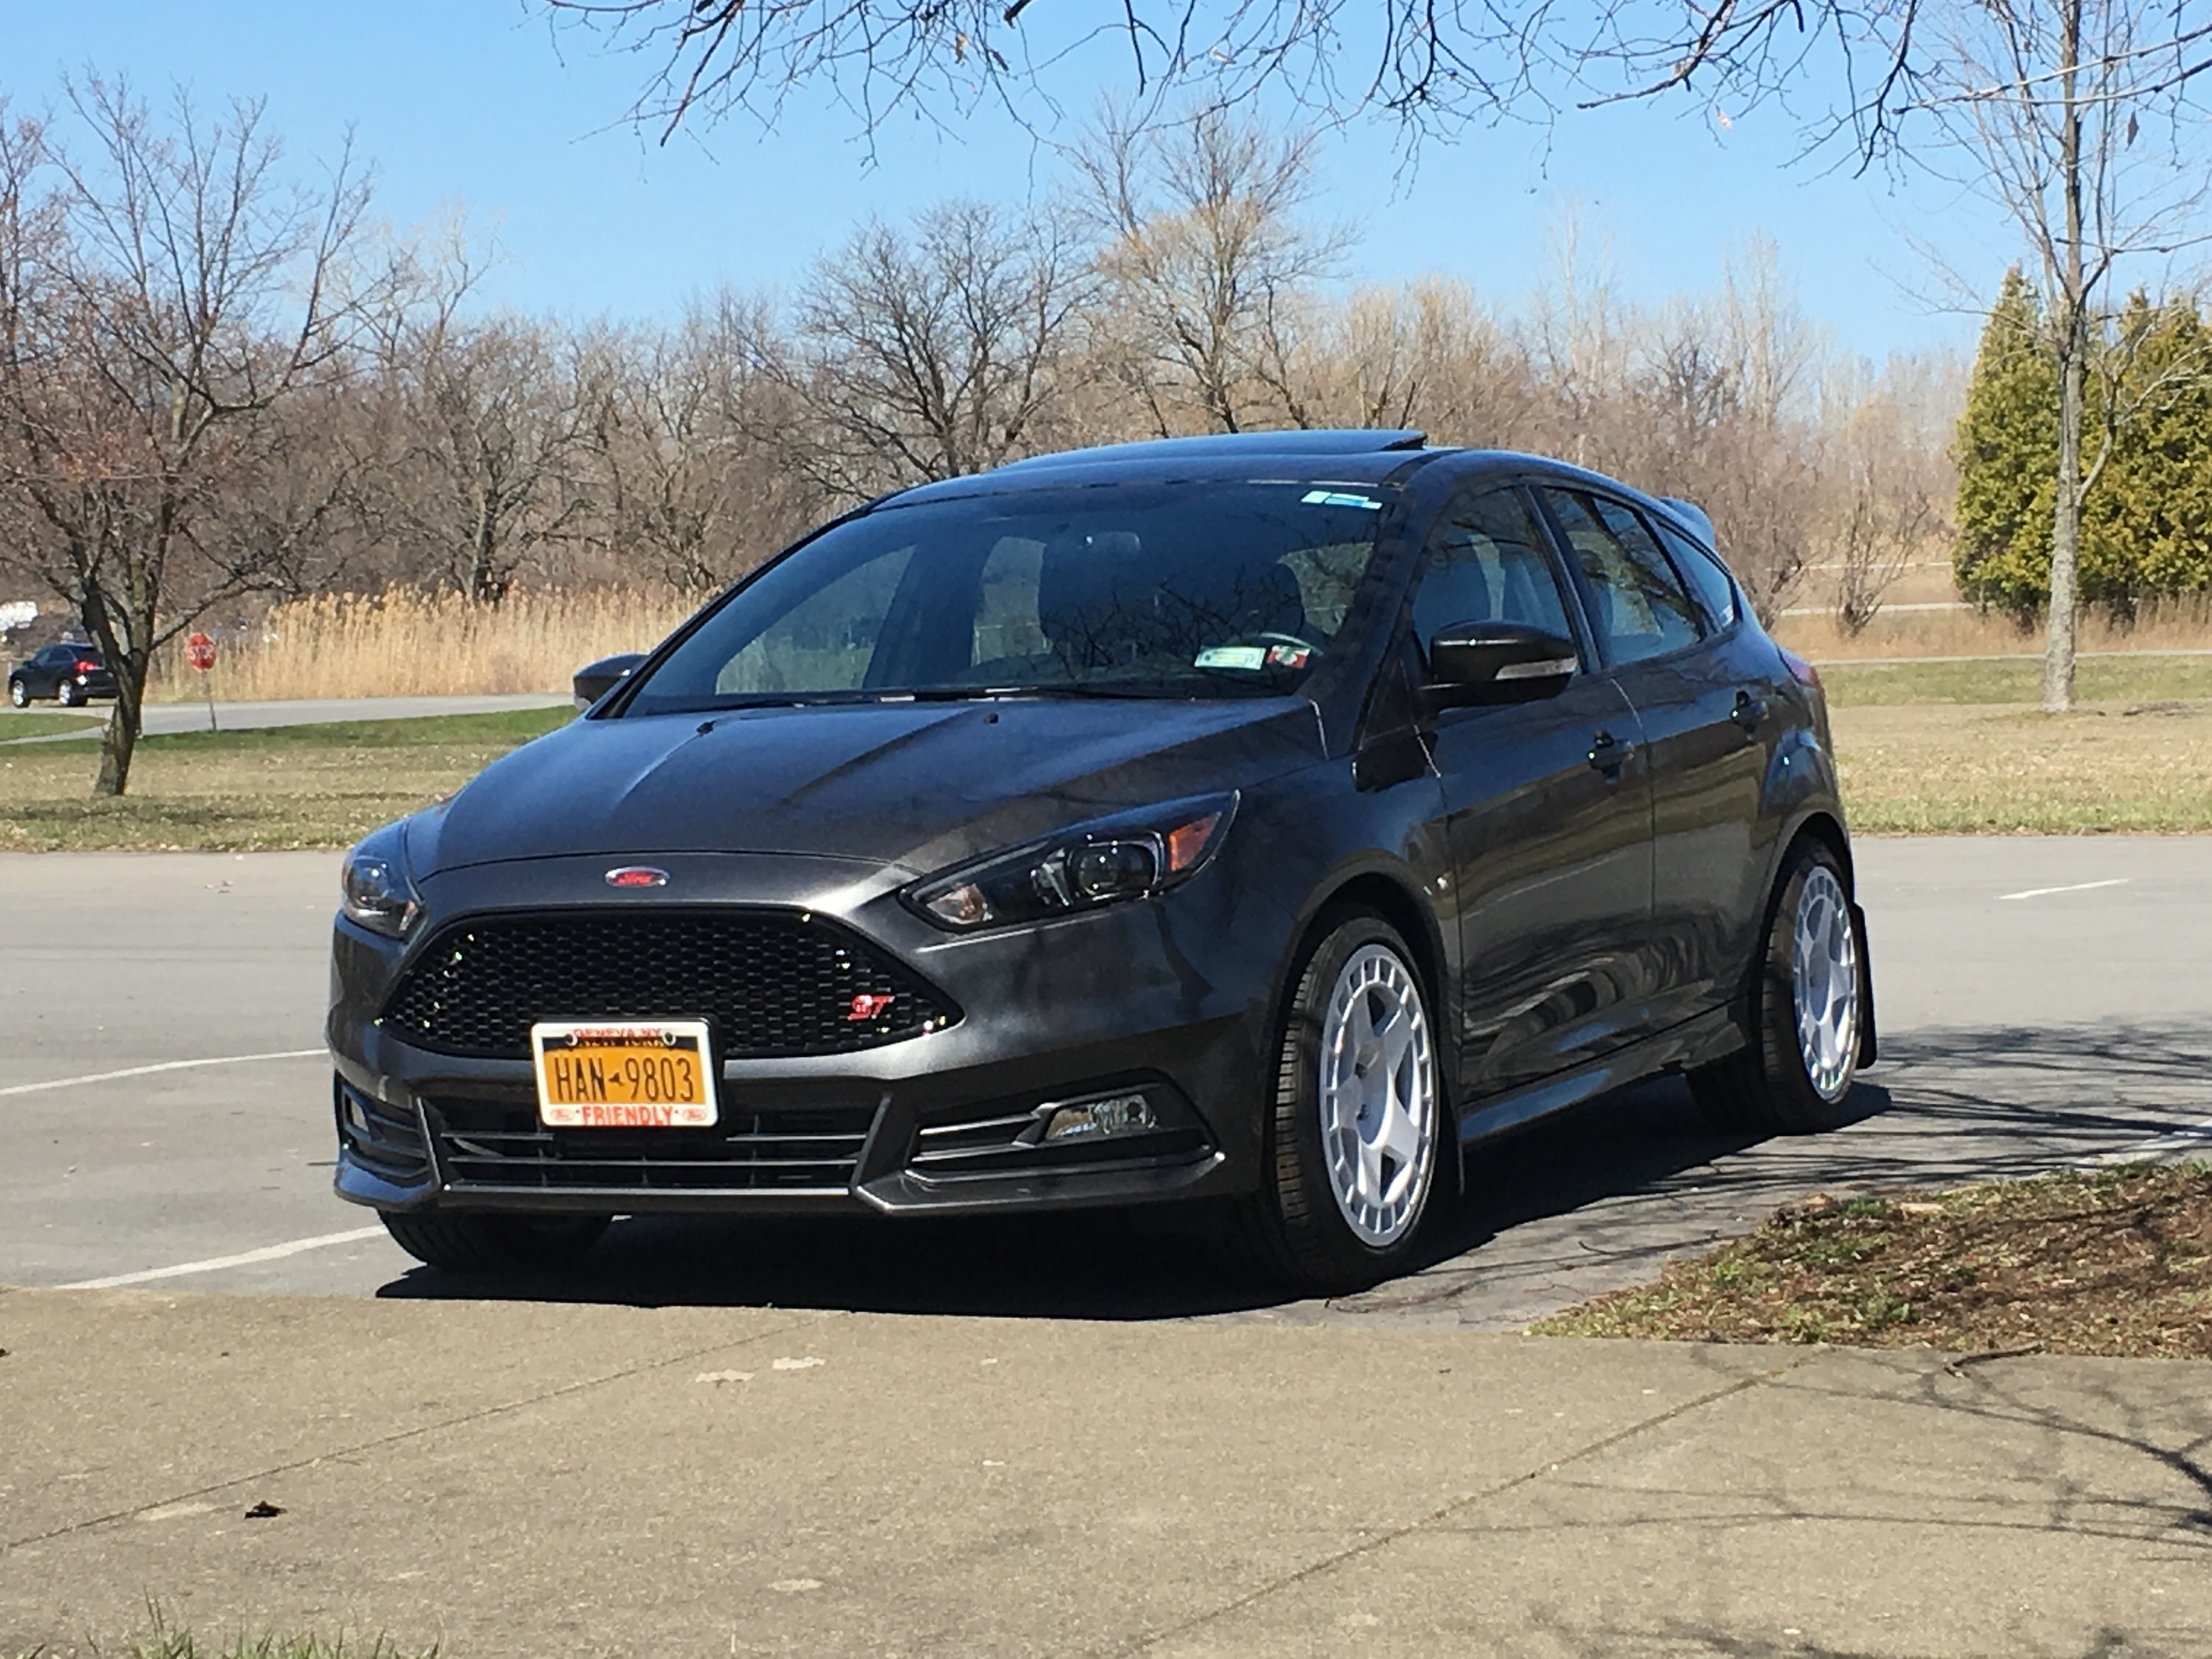 Official Focus ST Wheel and Tire Fitment Picture Thread ...